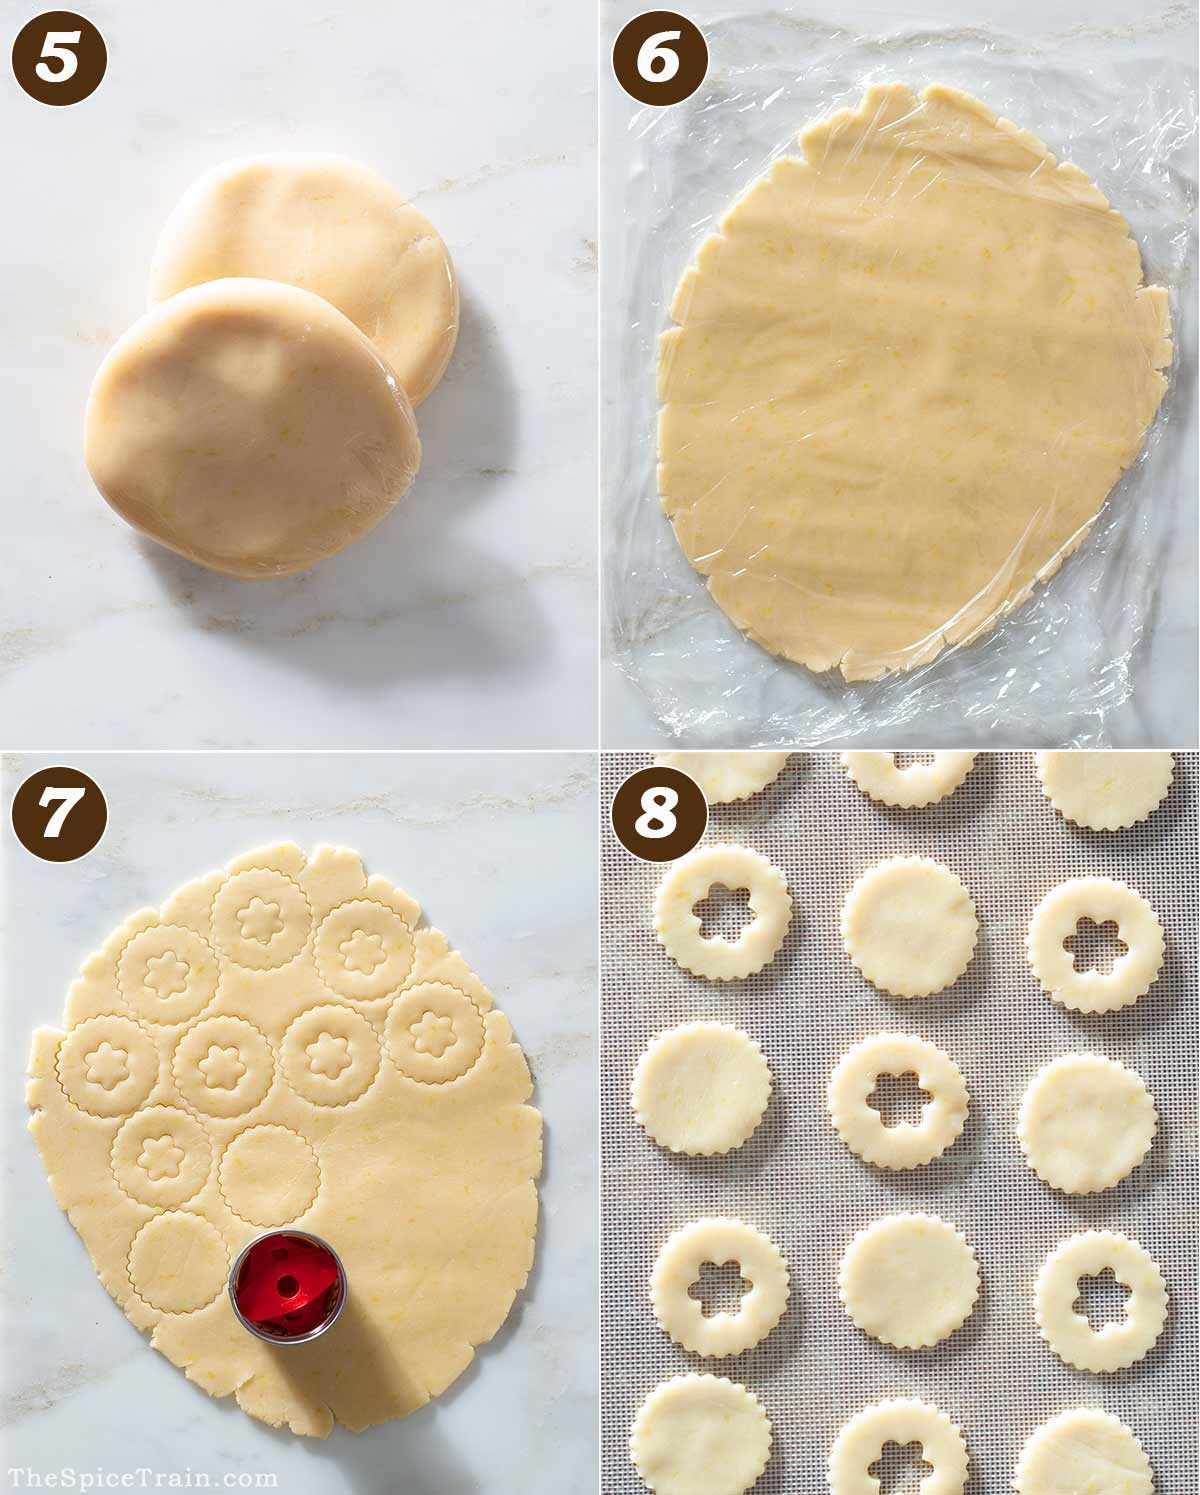 Lemon cookie dough being rolled and cut out in four steps.